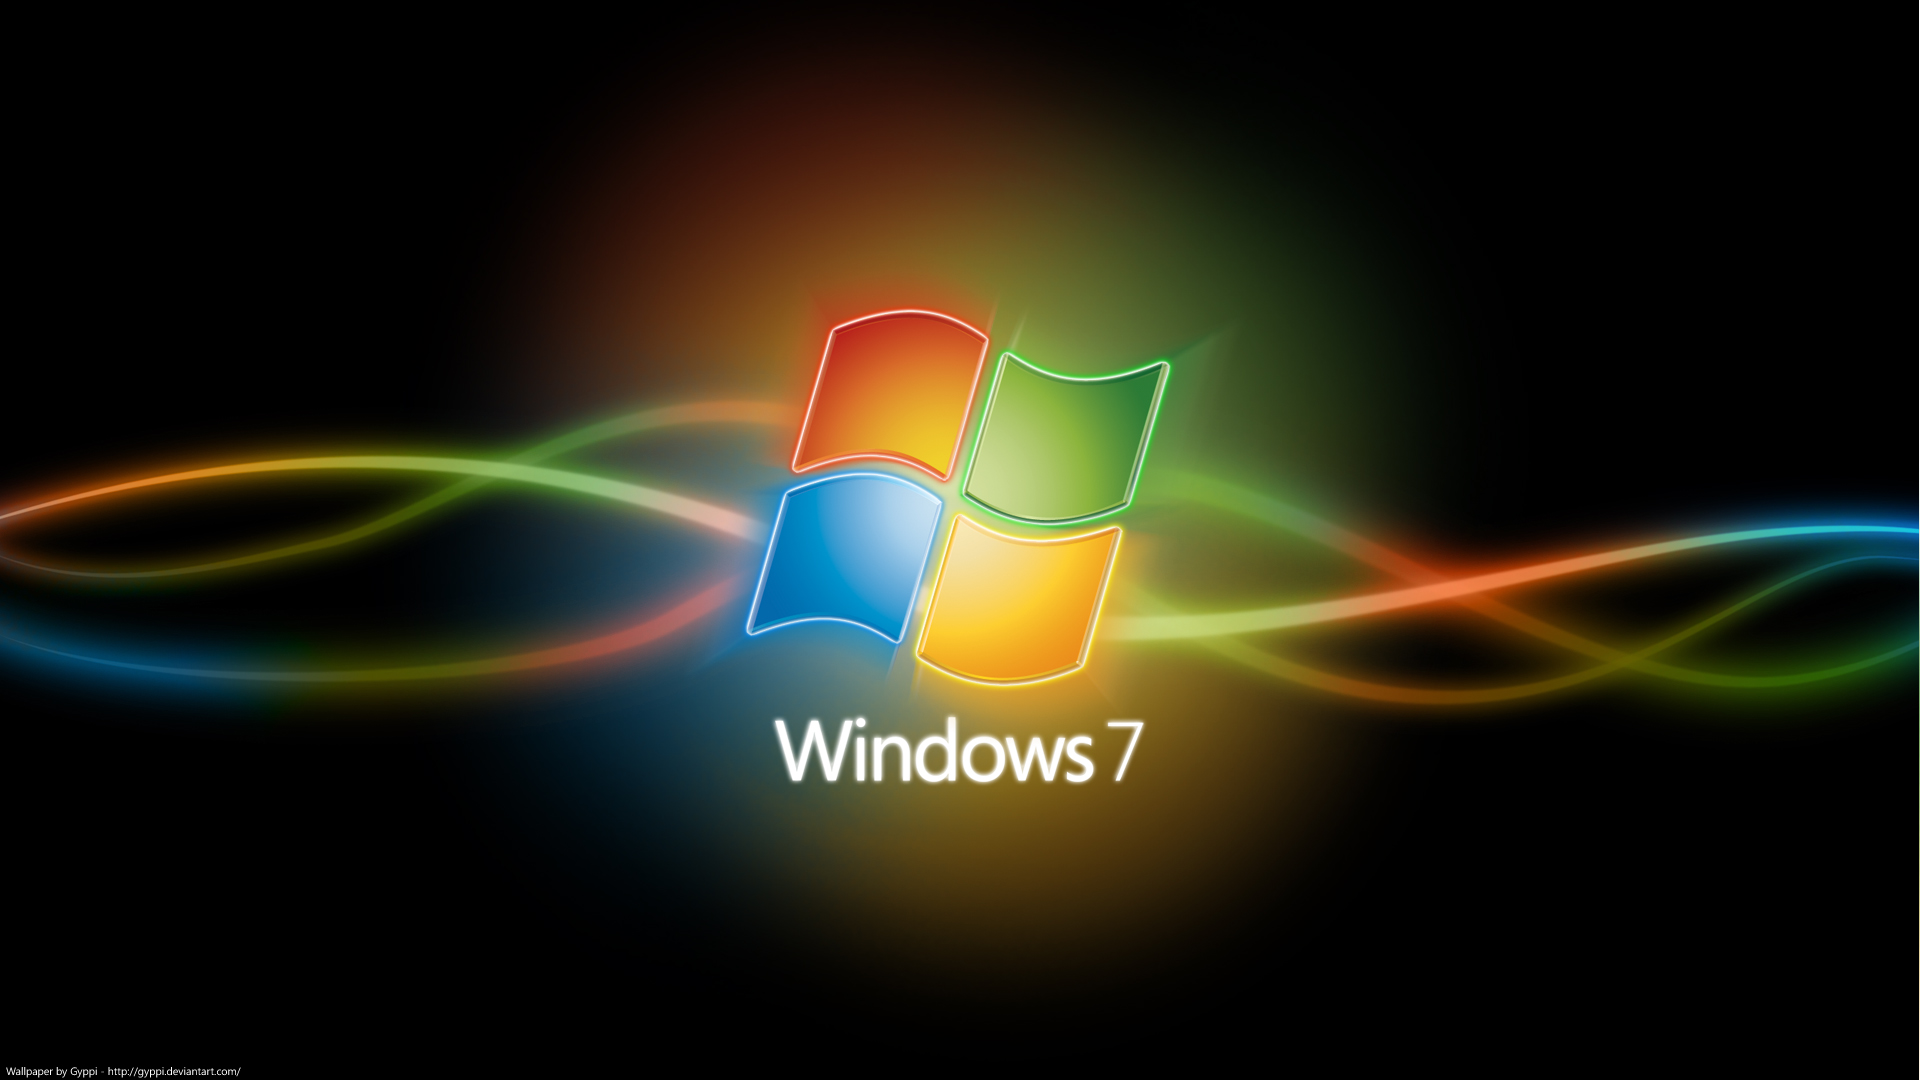 windows-7-wallpaper-hd (1)